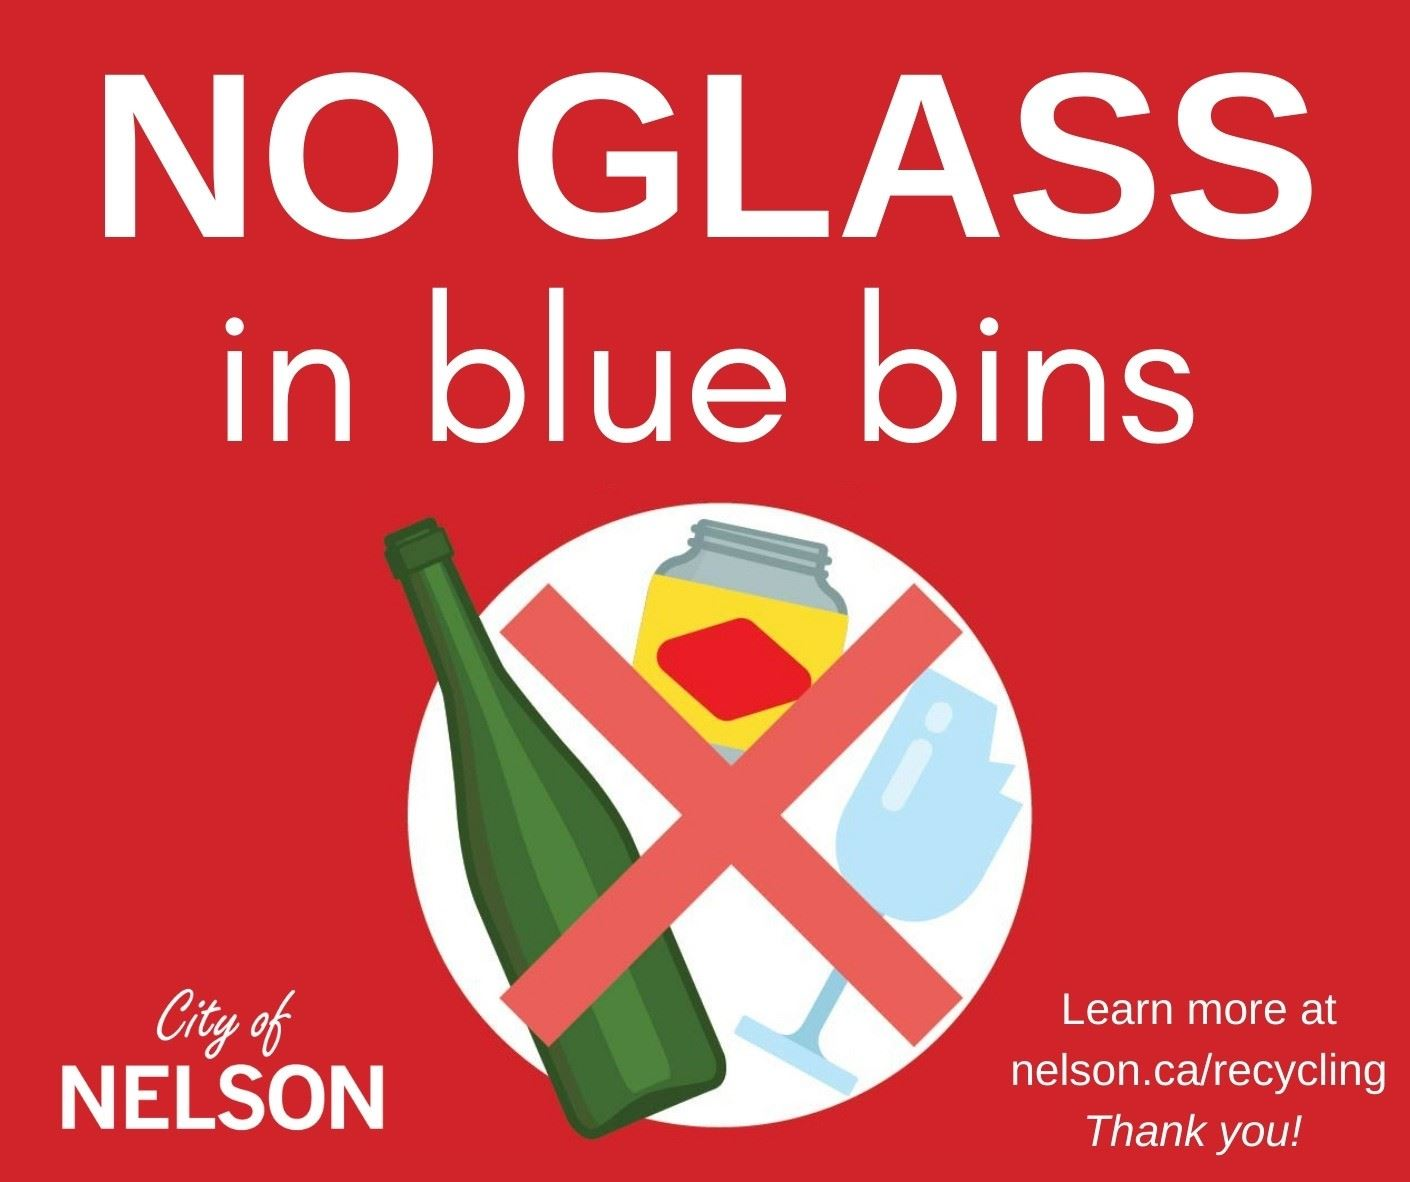 No glass in blue bins facebook